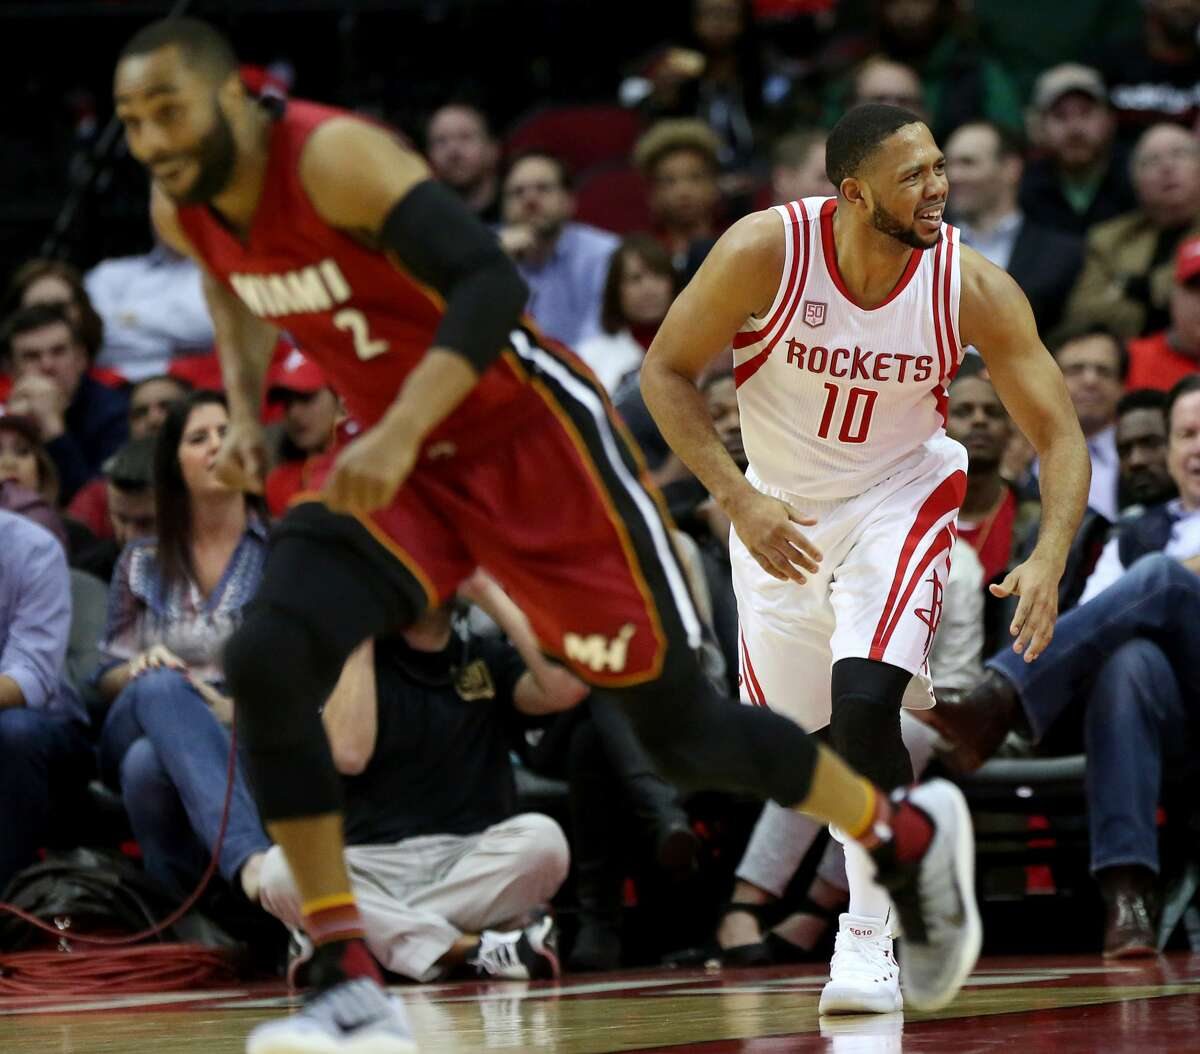 Houston Rockets guard Eric Gordon (10) is disappointed that Miami Heat players were not called foul on him during the second half of the game Wednesday, Feb. 15, 2017, in Houston. ( Yi-Chin Lee / Houston Chronicle )